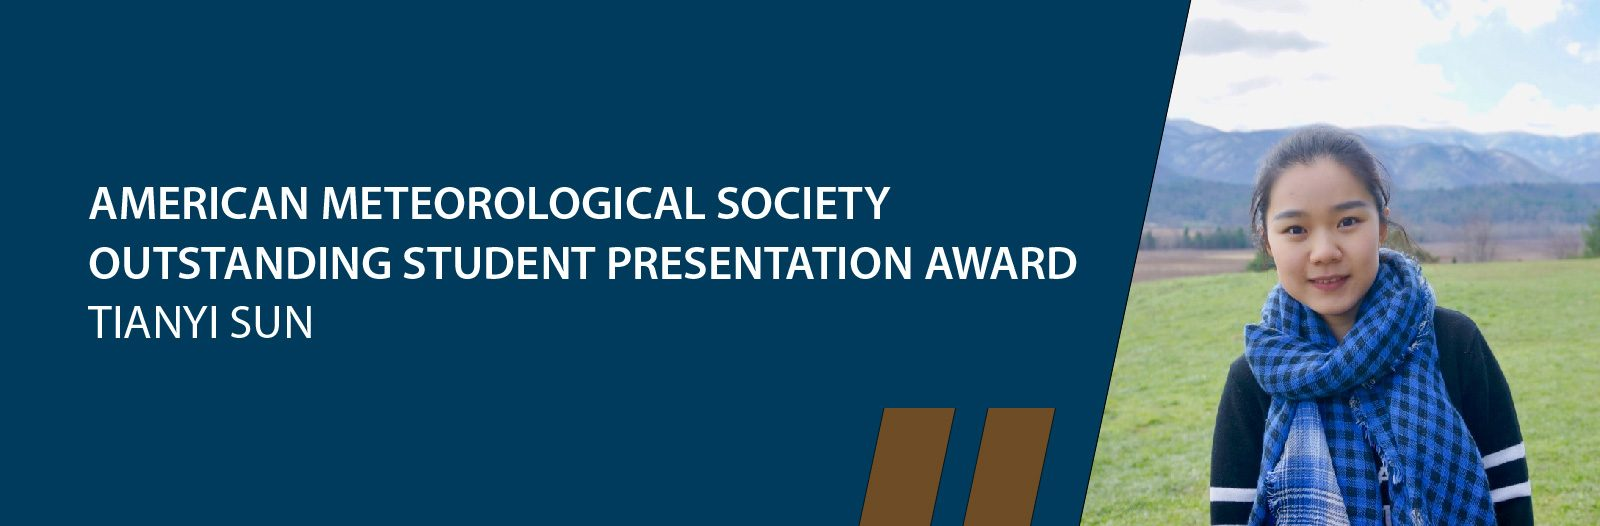 Tianyi Sun awarded AMS Outstanding Student Presentation Award for the second time